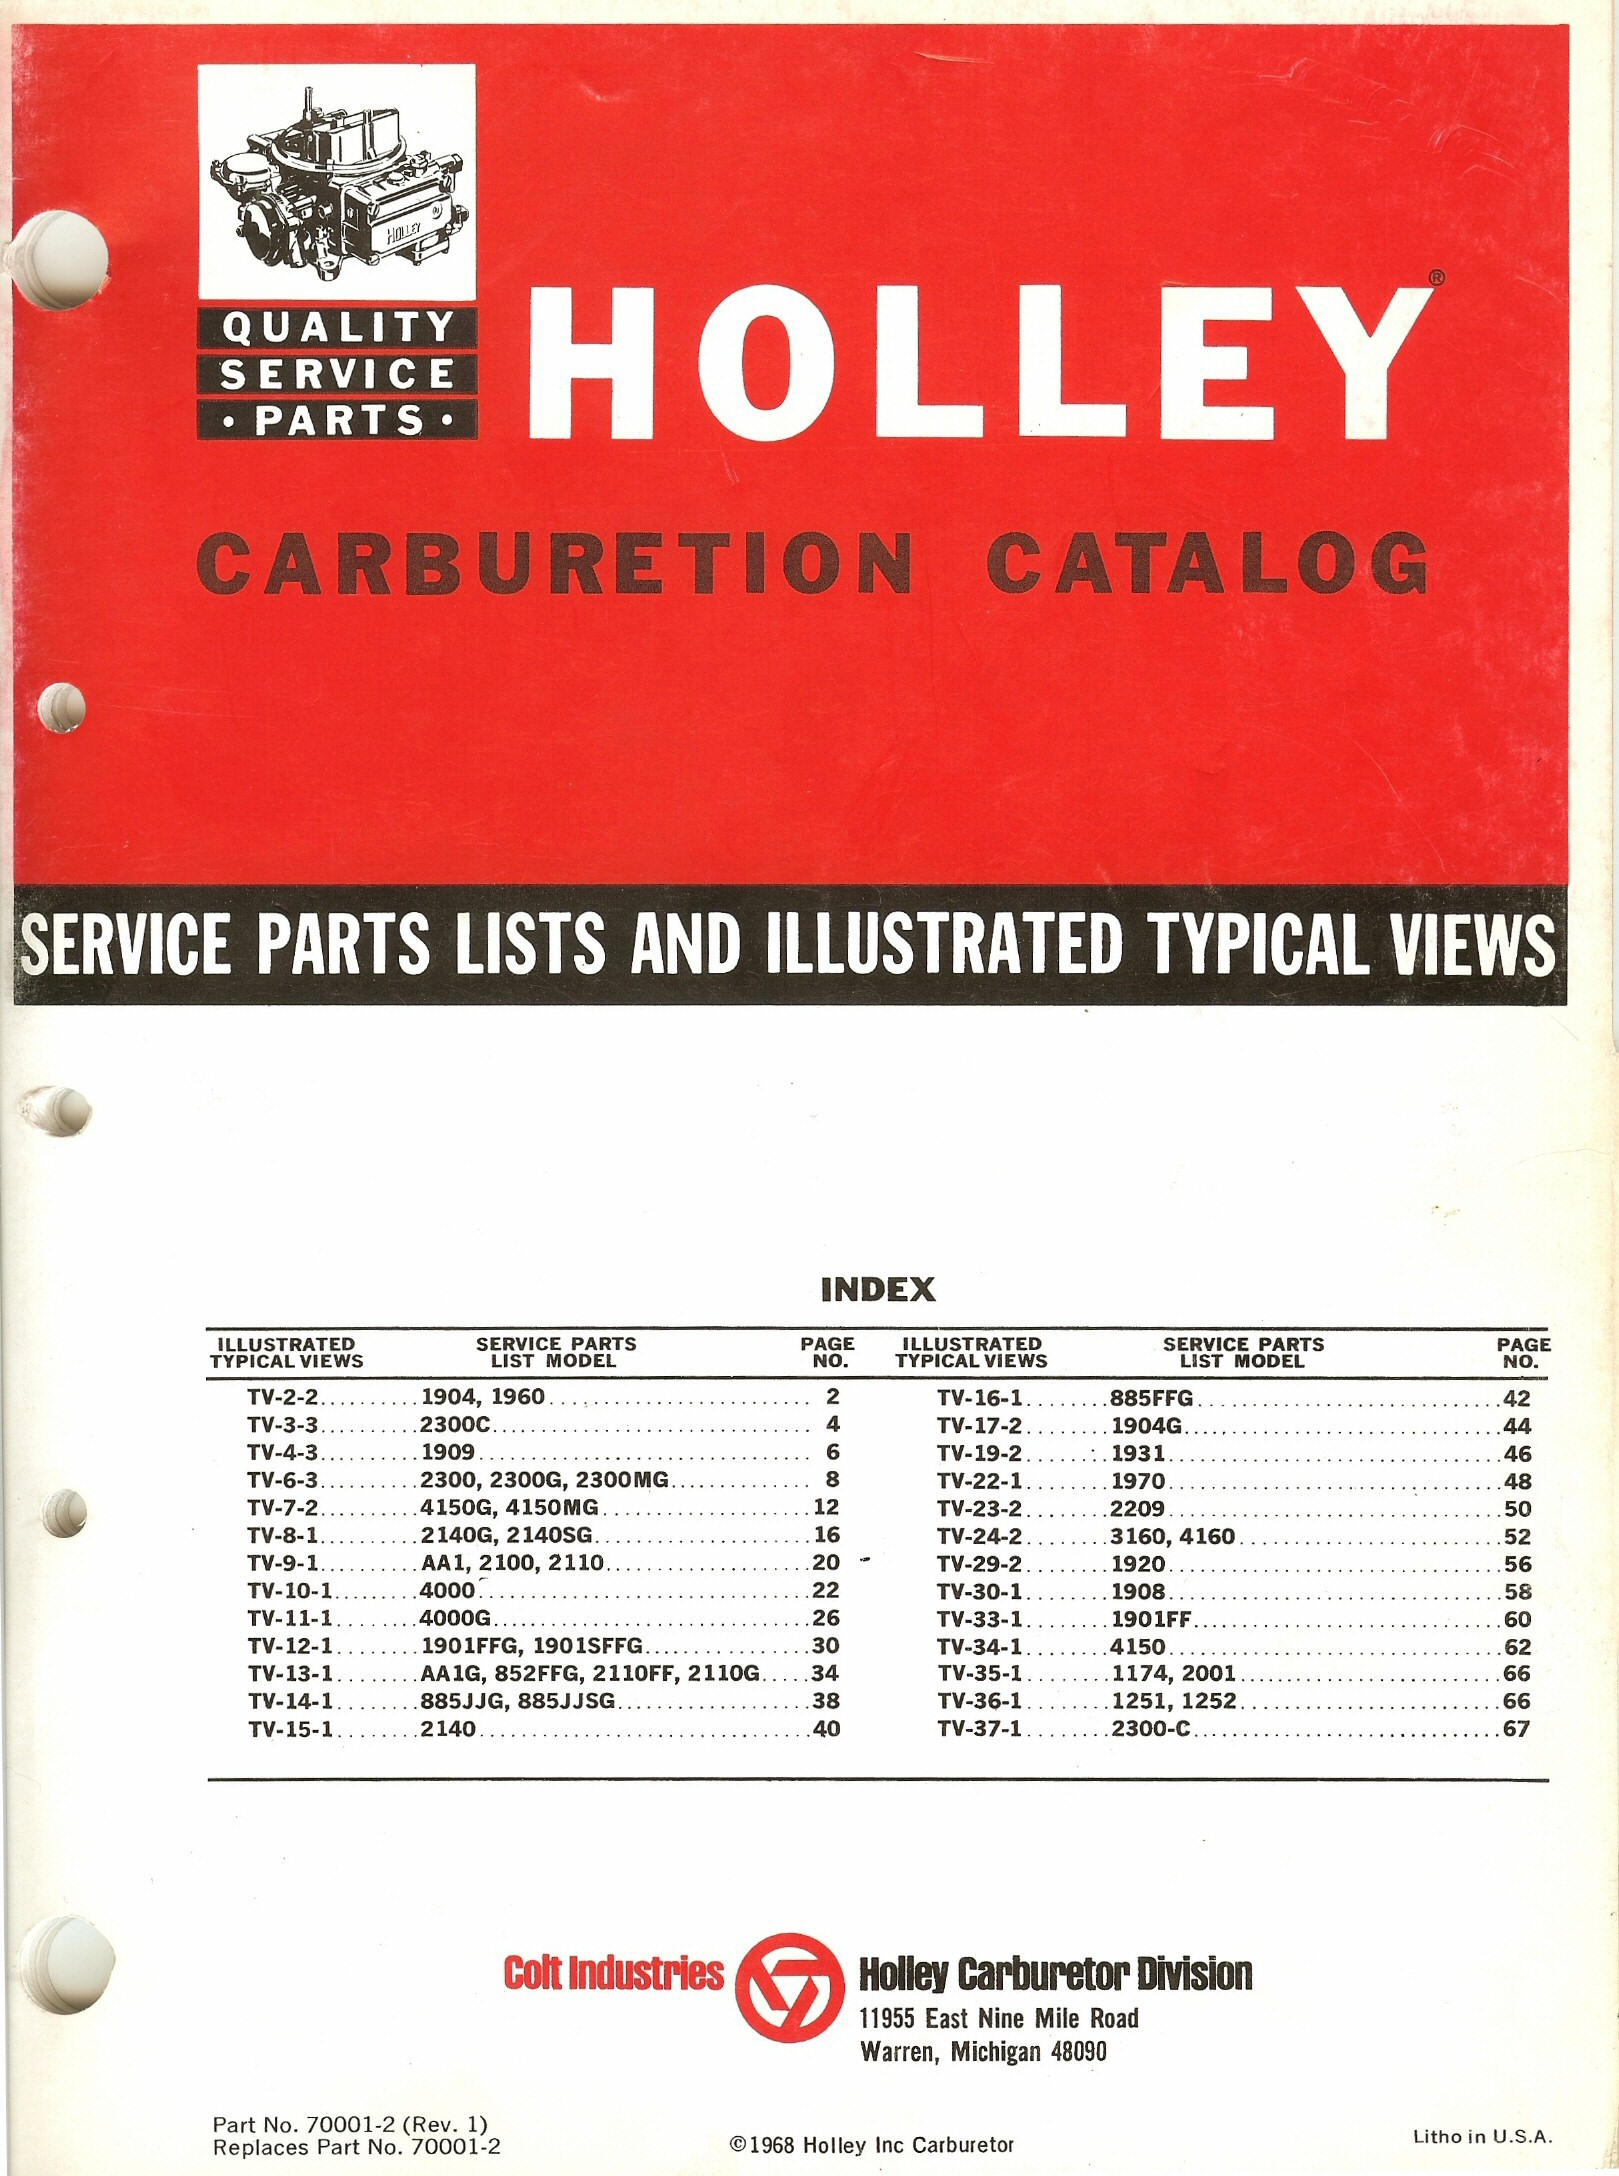 Holley Carburetor Exploded Diagrams - The Old Car Manual Project